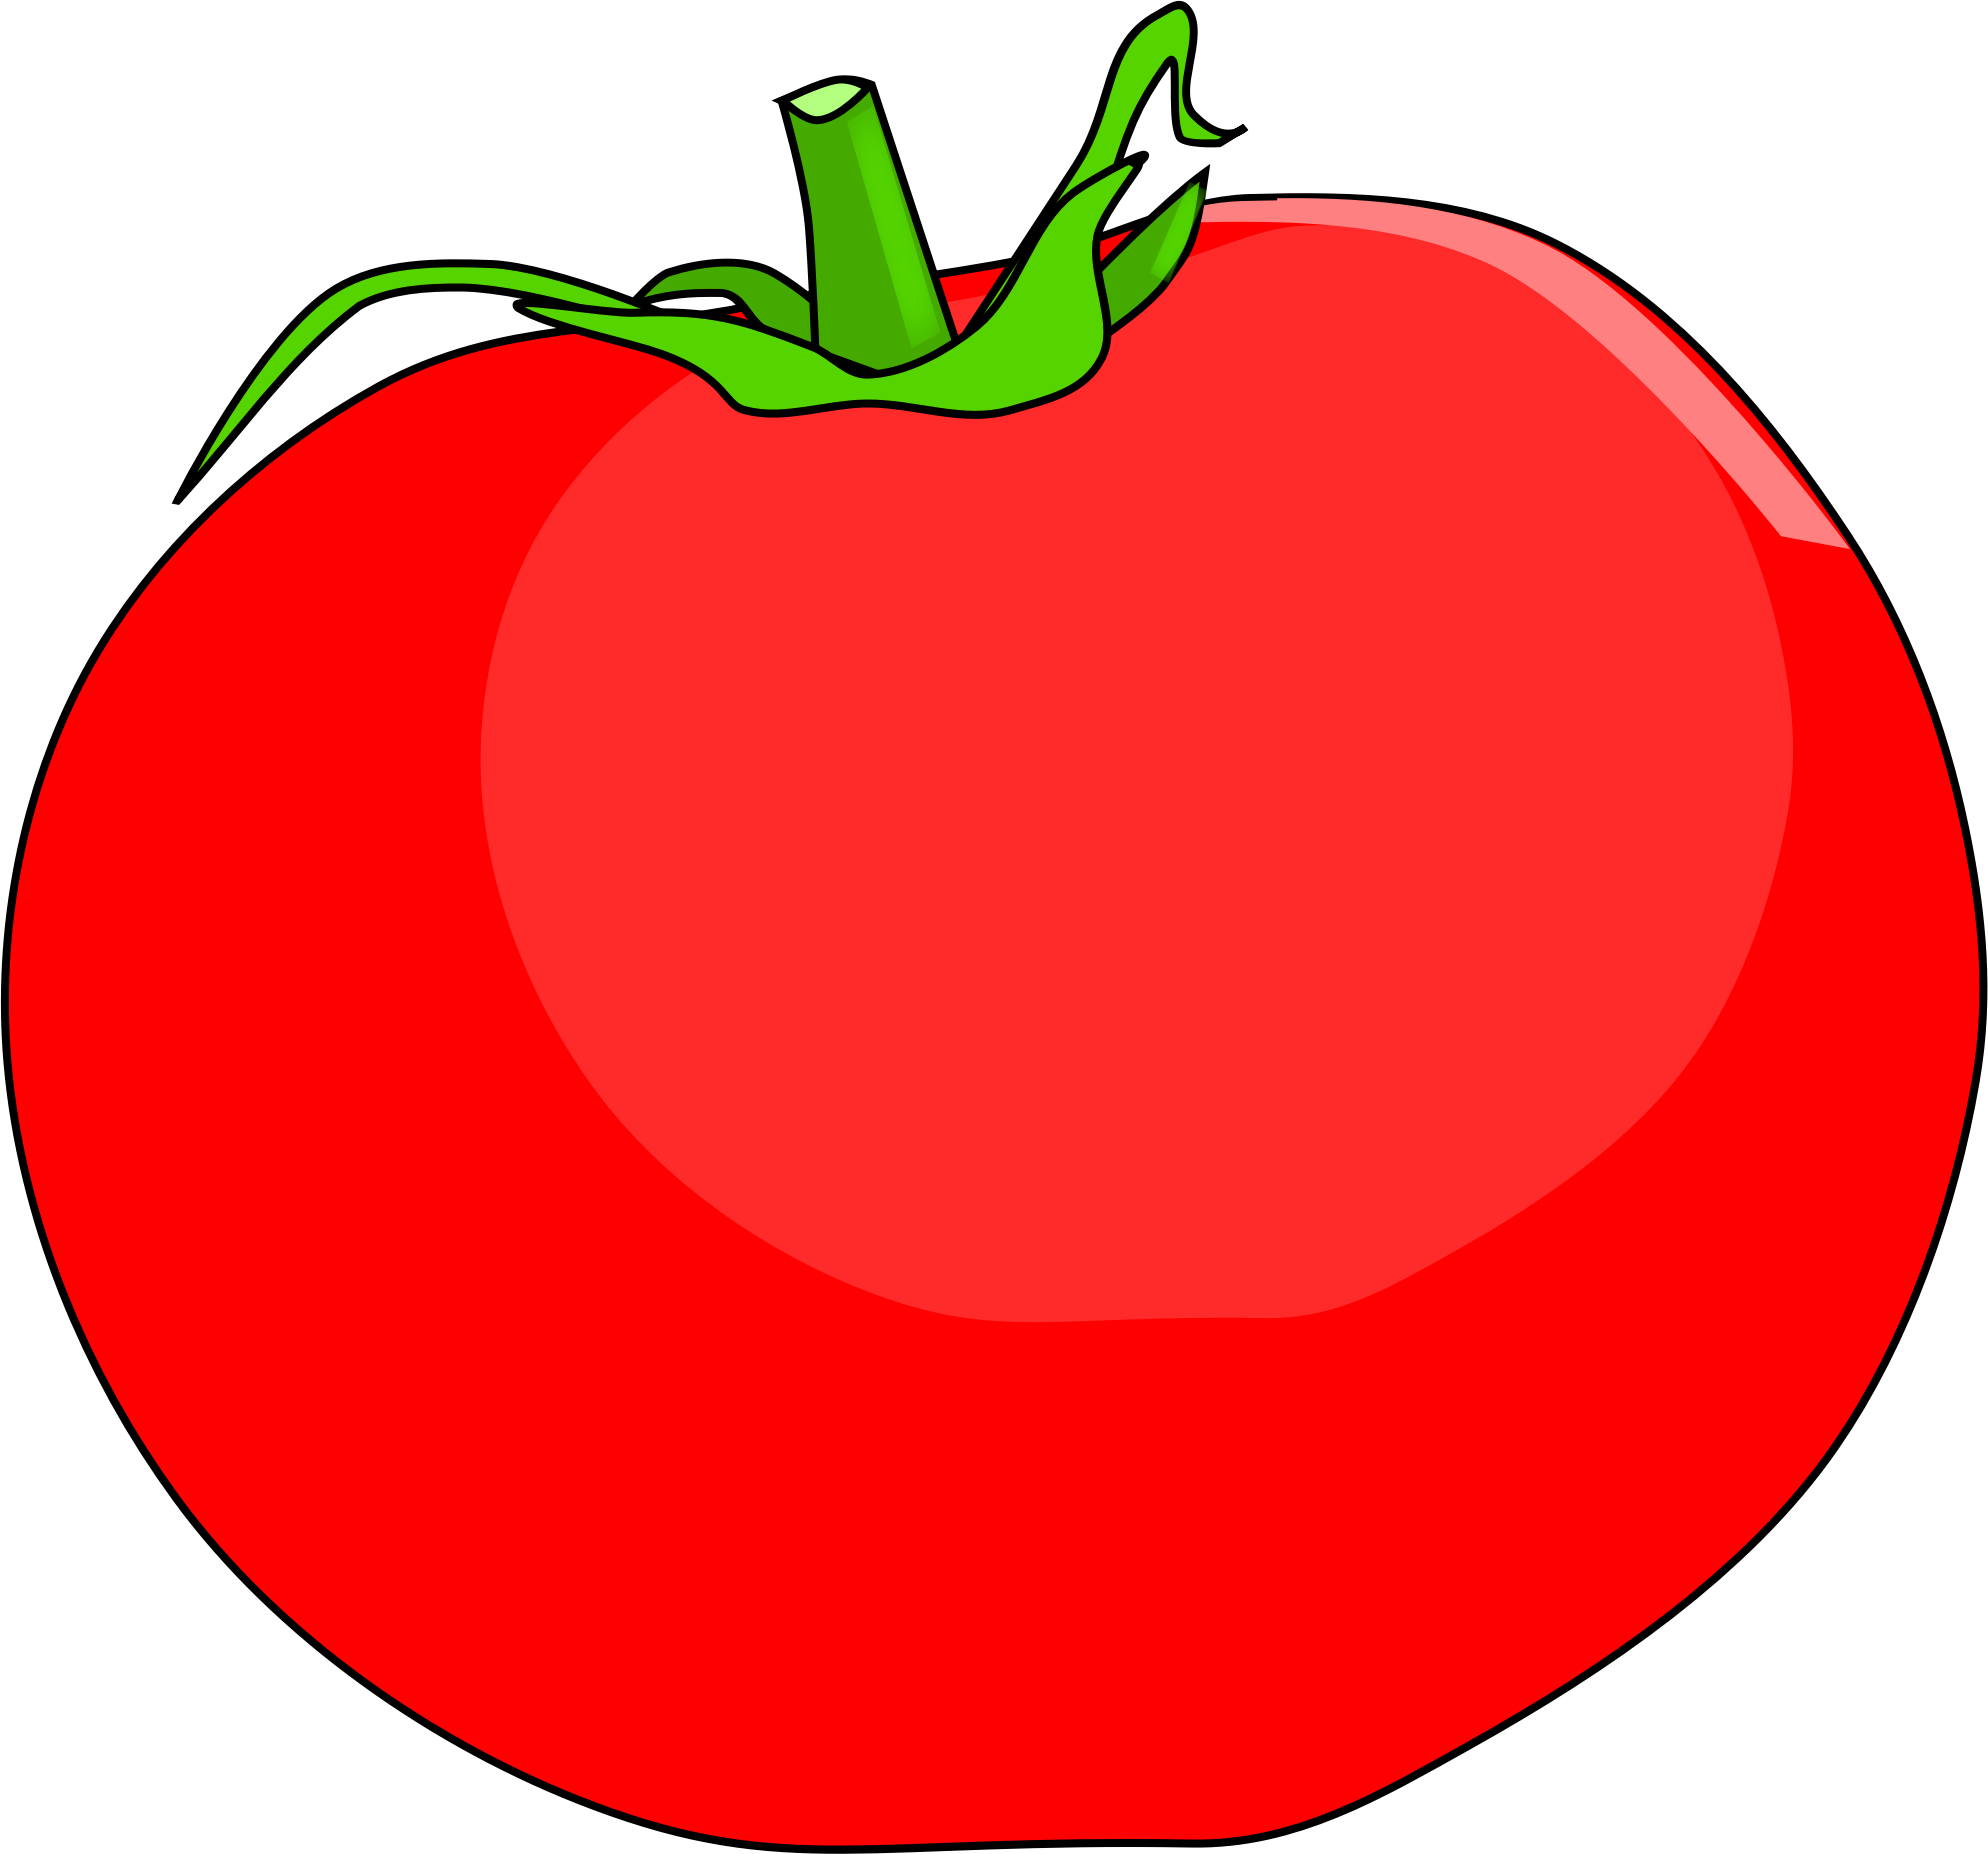 Tomatoes clipart vegetable planting. Tomato big image png